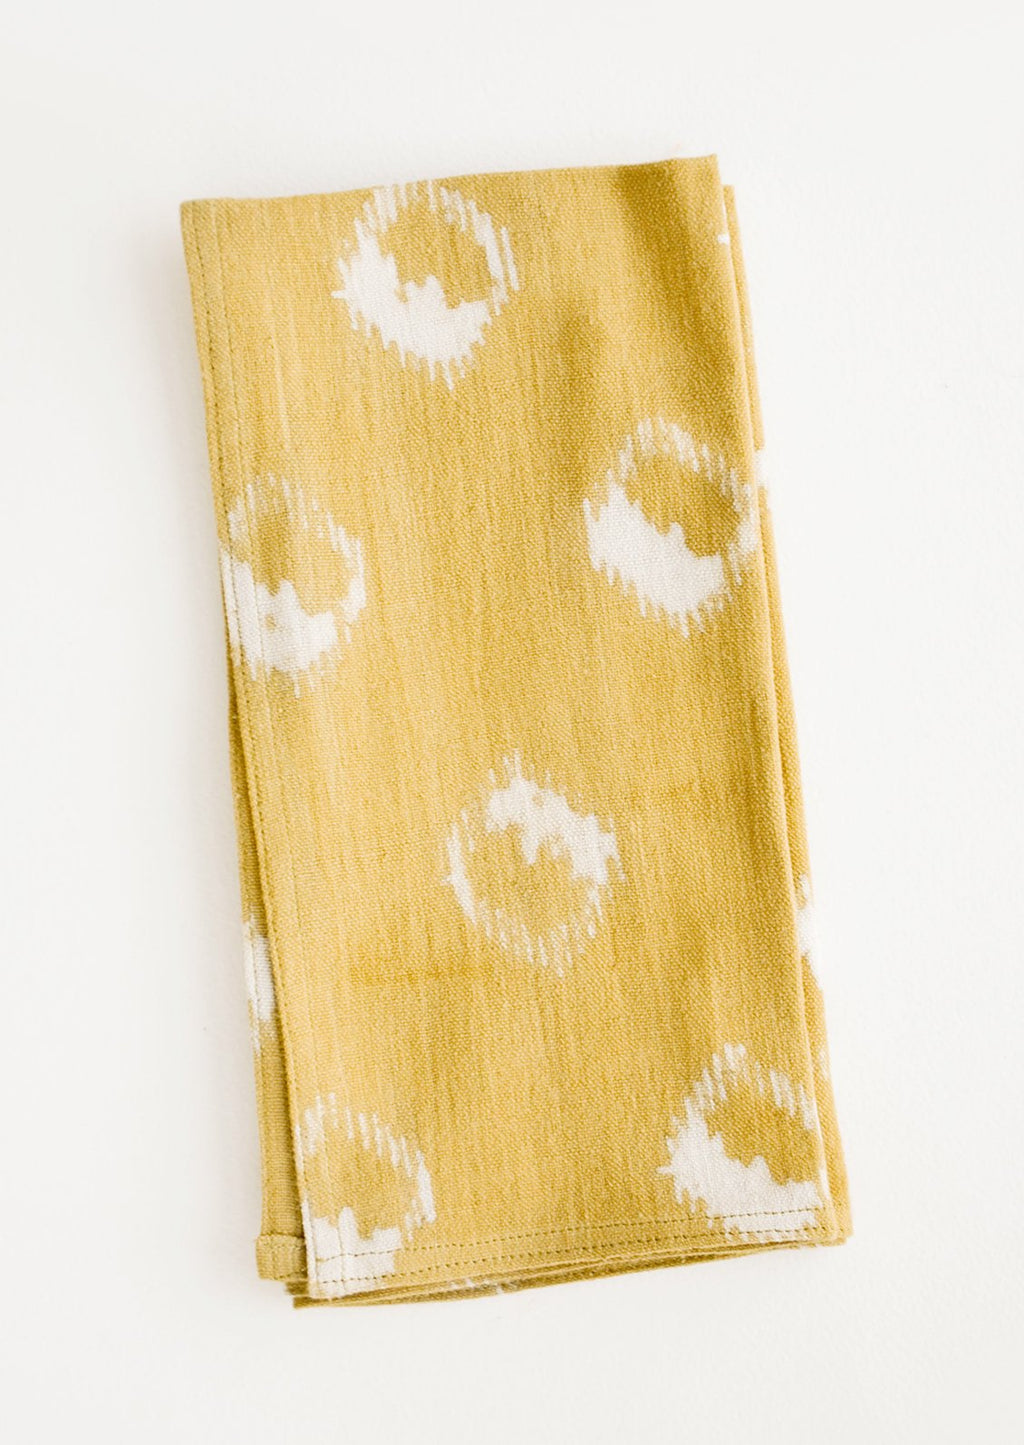 Mustard: Block print cotton dinner napkin in mustard yellow with ikat print